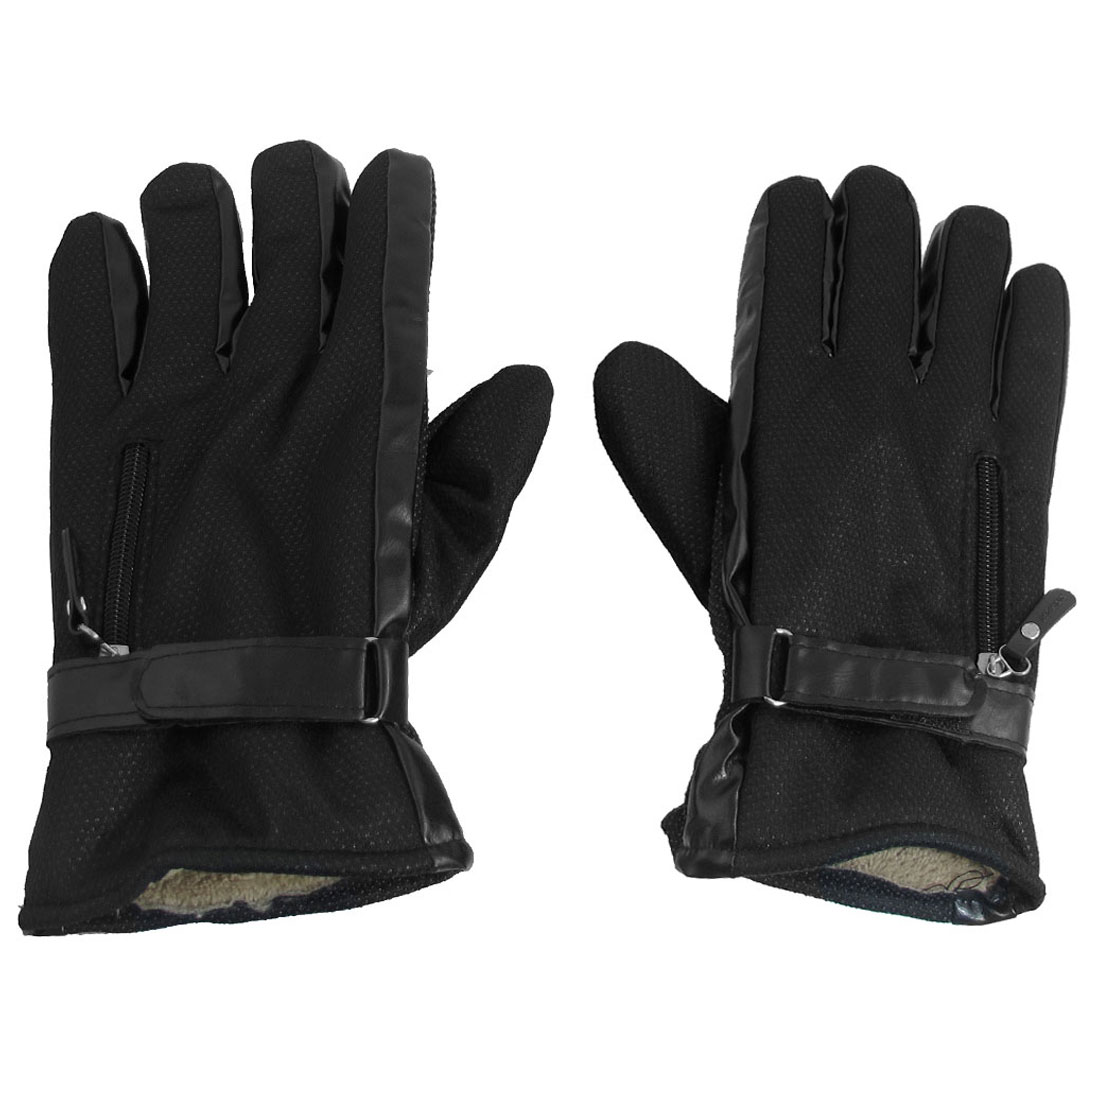 Man Antislip Dotted Design Hook Loop Fastener Warmer Gloves Black